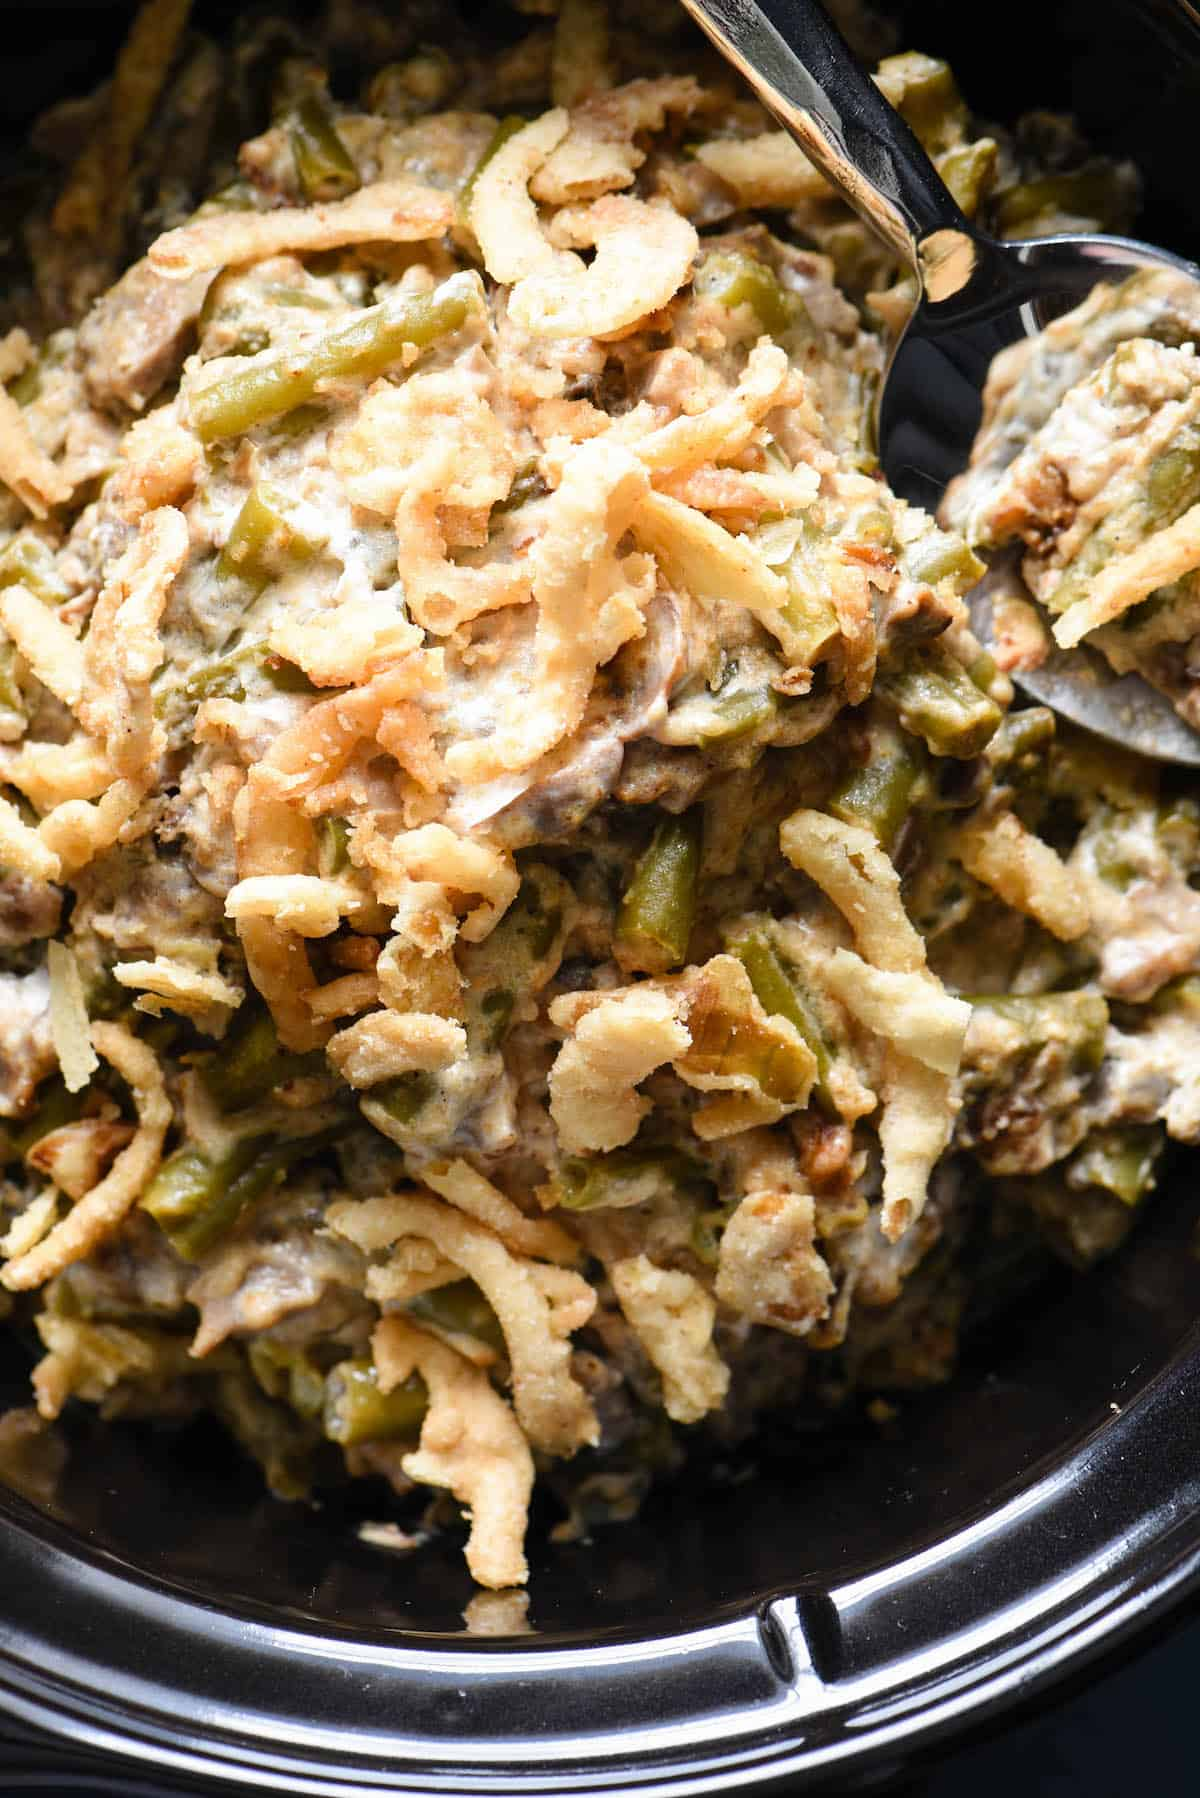 This Crockpot Green Bean Casserole is made with fresh beans and doesn't use canned soup. It's a yummy and easy upgrade to a classic dish, and doesn't take up oven space for a holiday meal! | foxeslovelemons.com